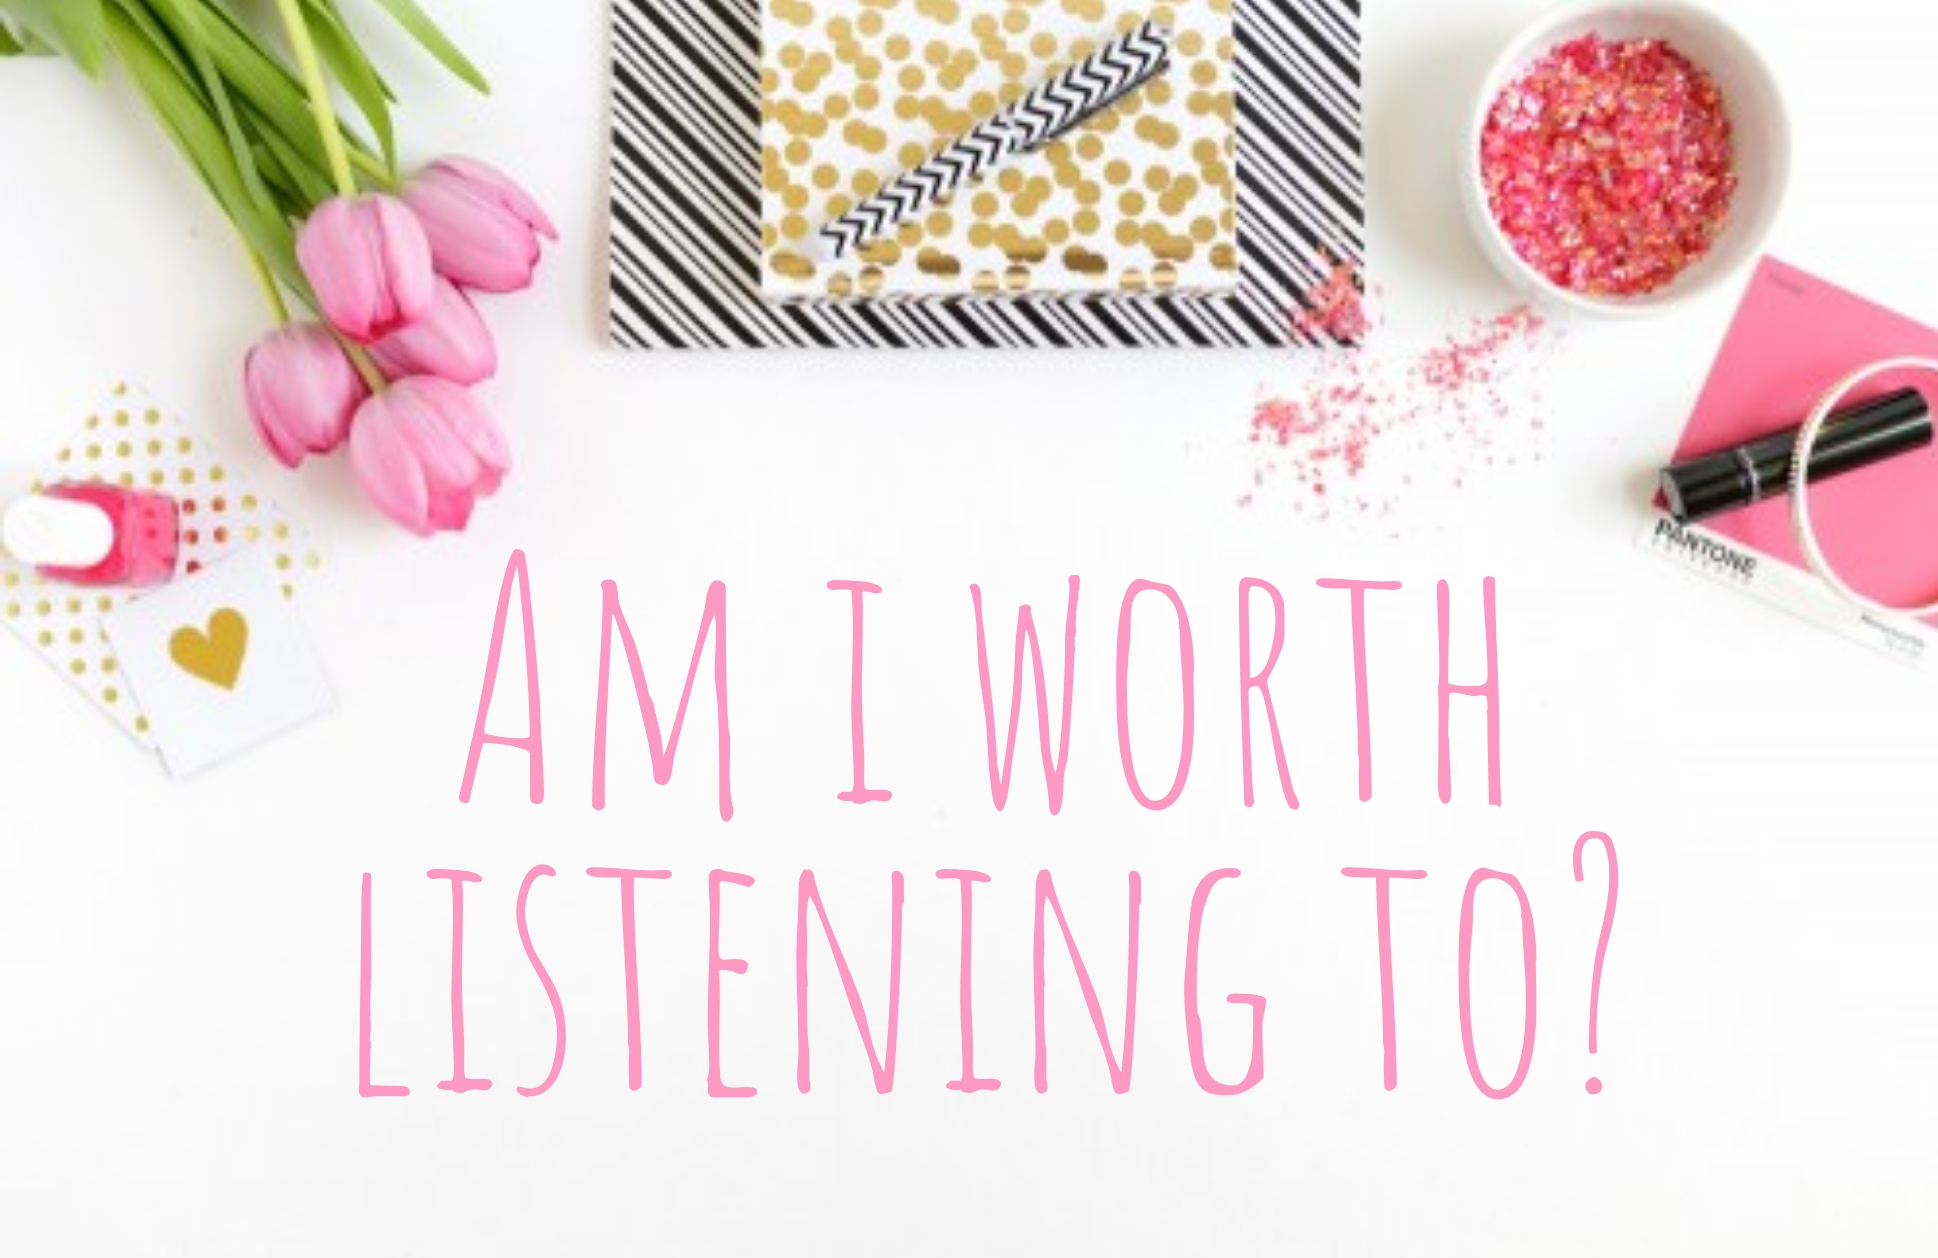 Am I Worth Listening To?